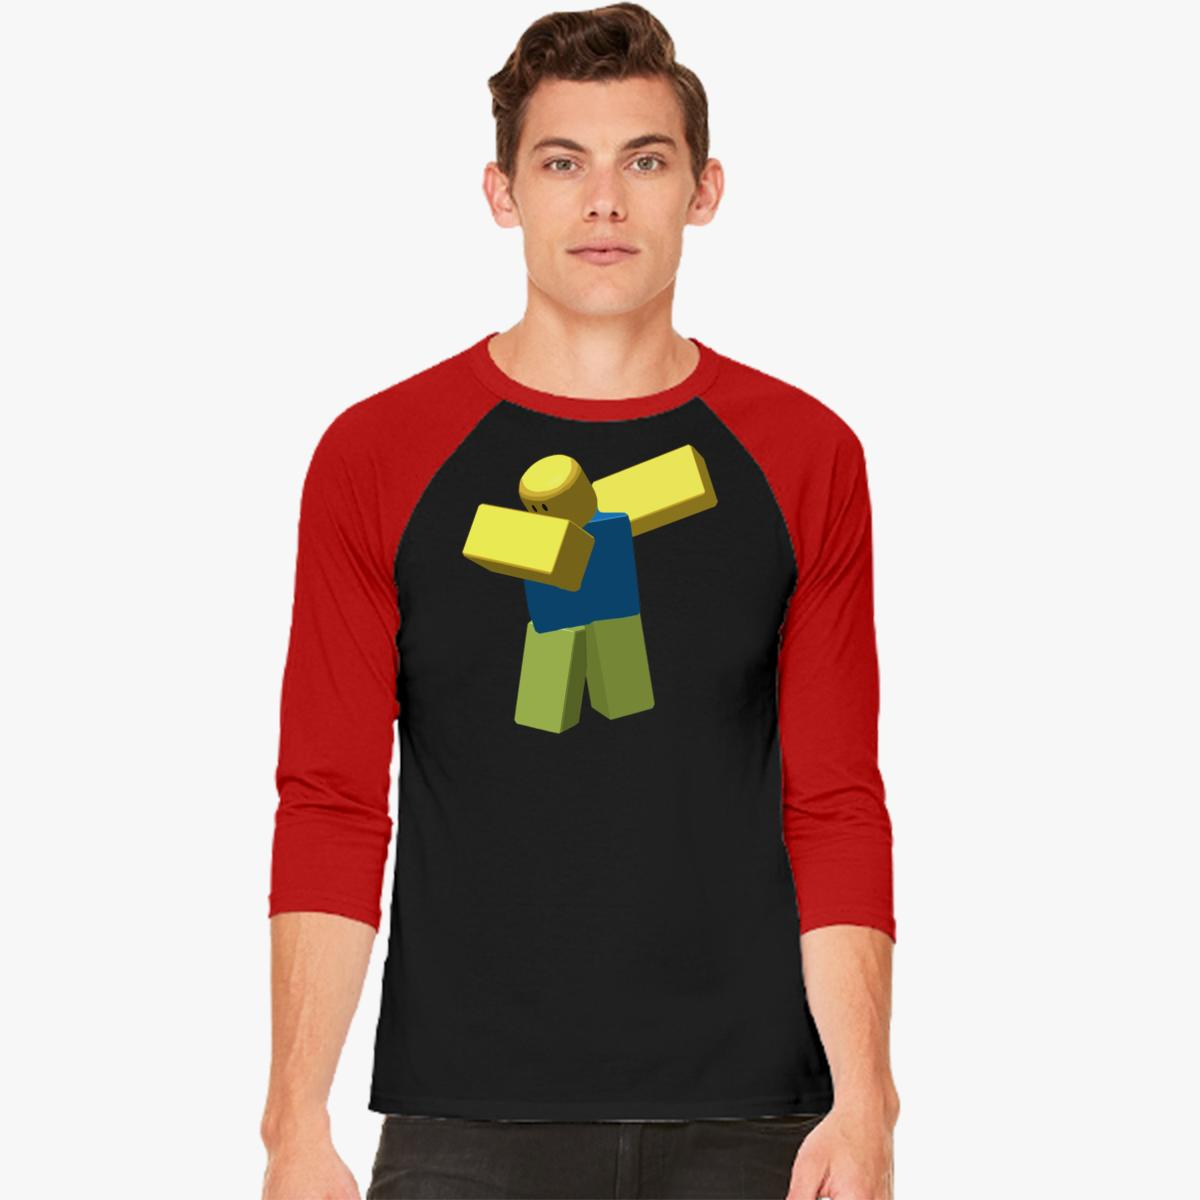 Cool Shirts To Buy In Roblox | ANLIS